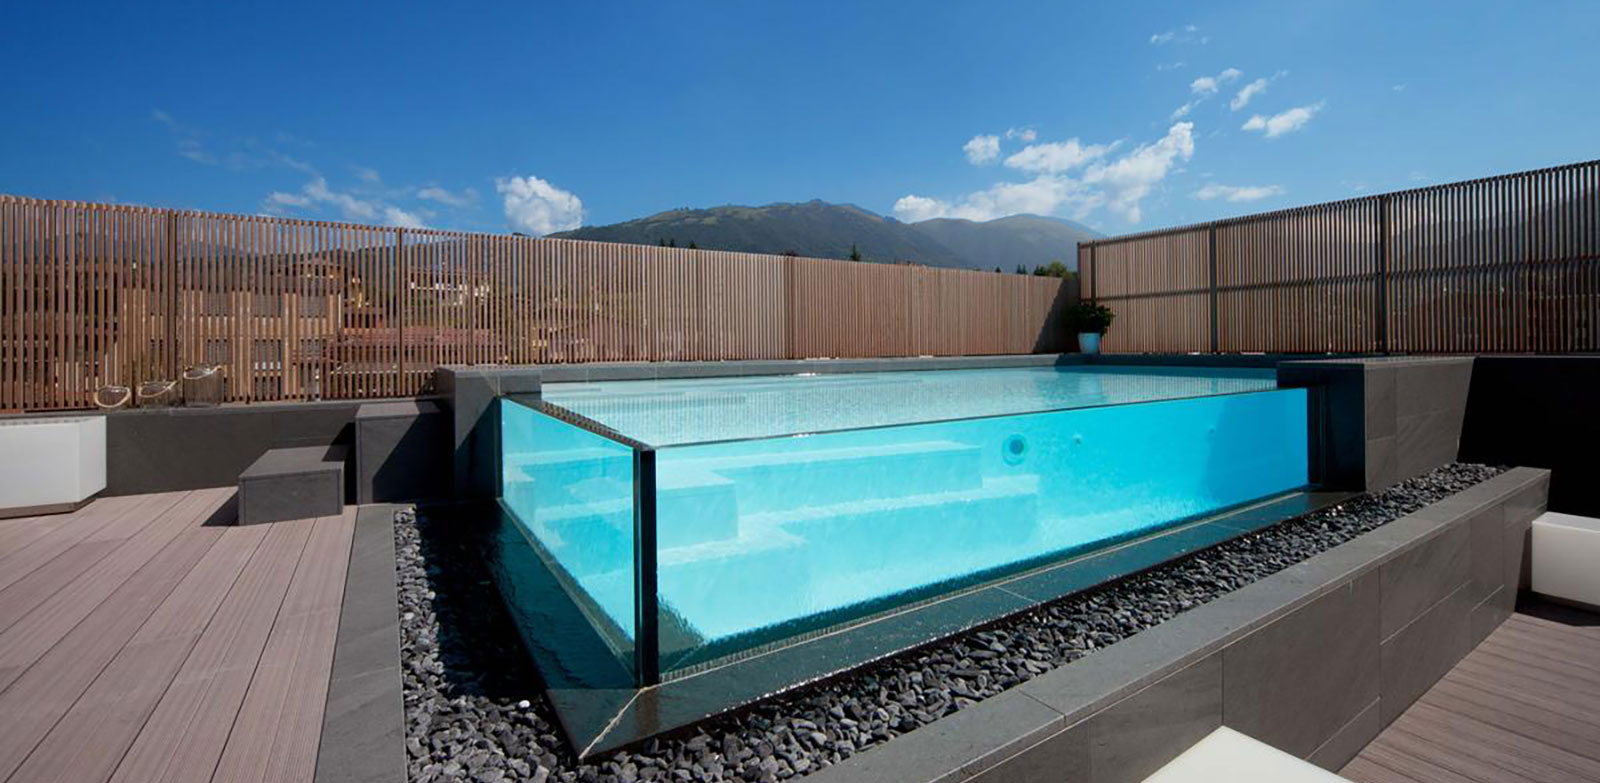 Good piscine bordo sfioro crystal with immagini piscine - Piscina a giussano ...